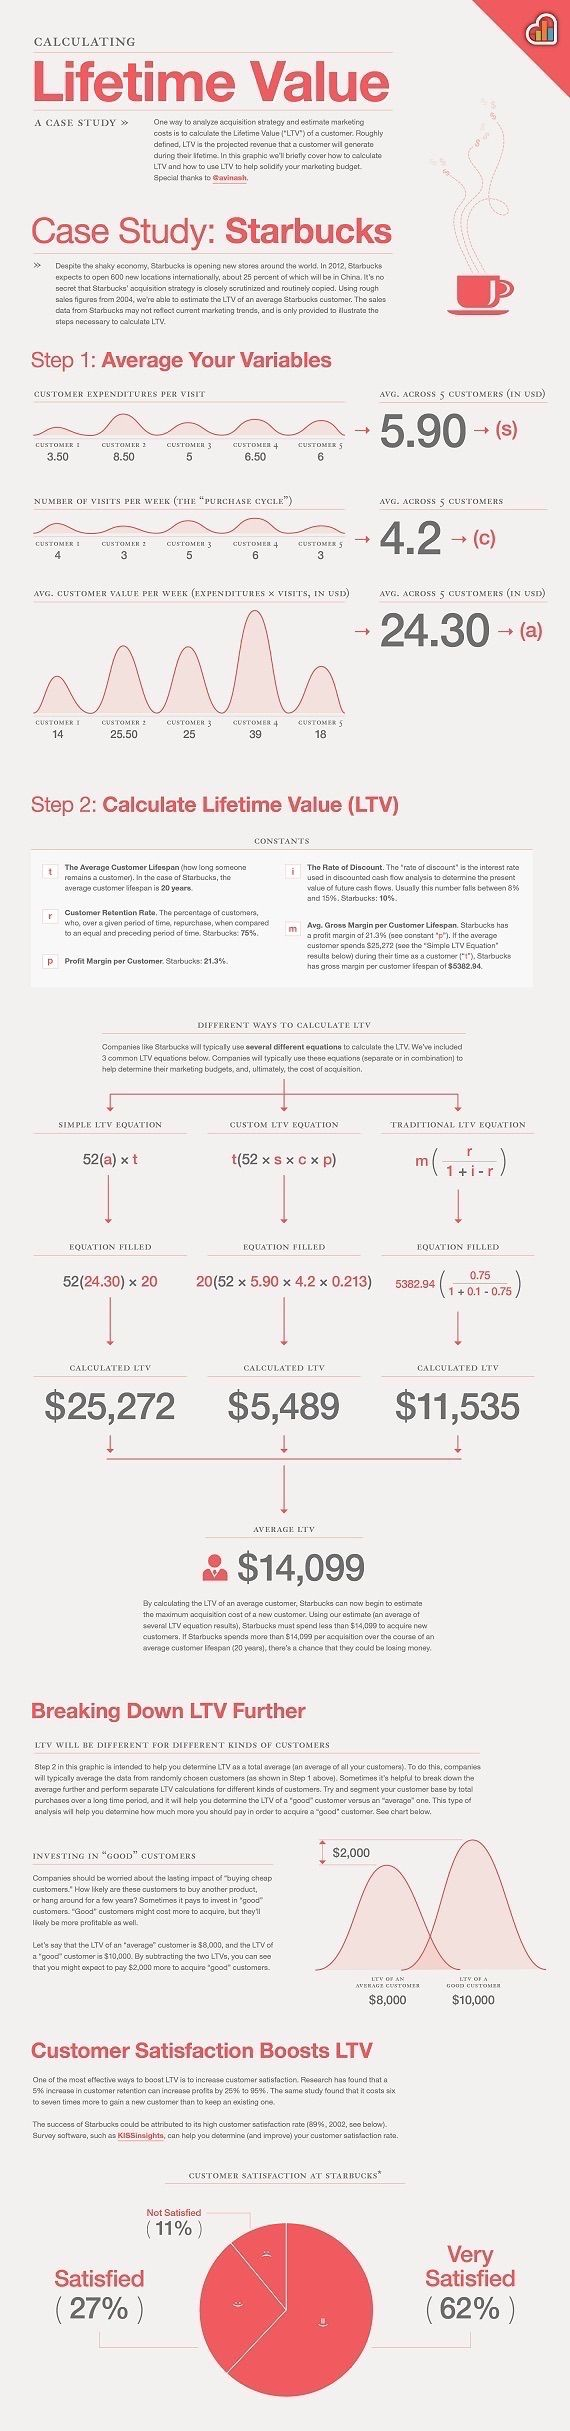 How To Calculate Lifetime Value - The Infographic (infographic)